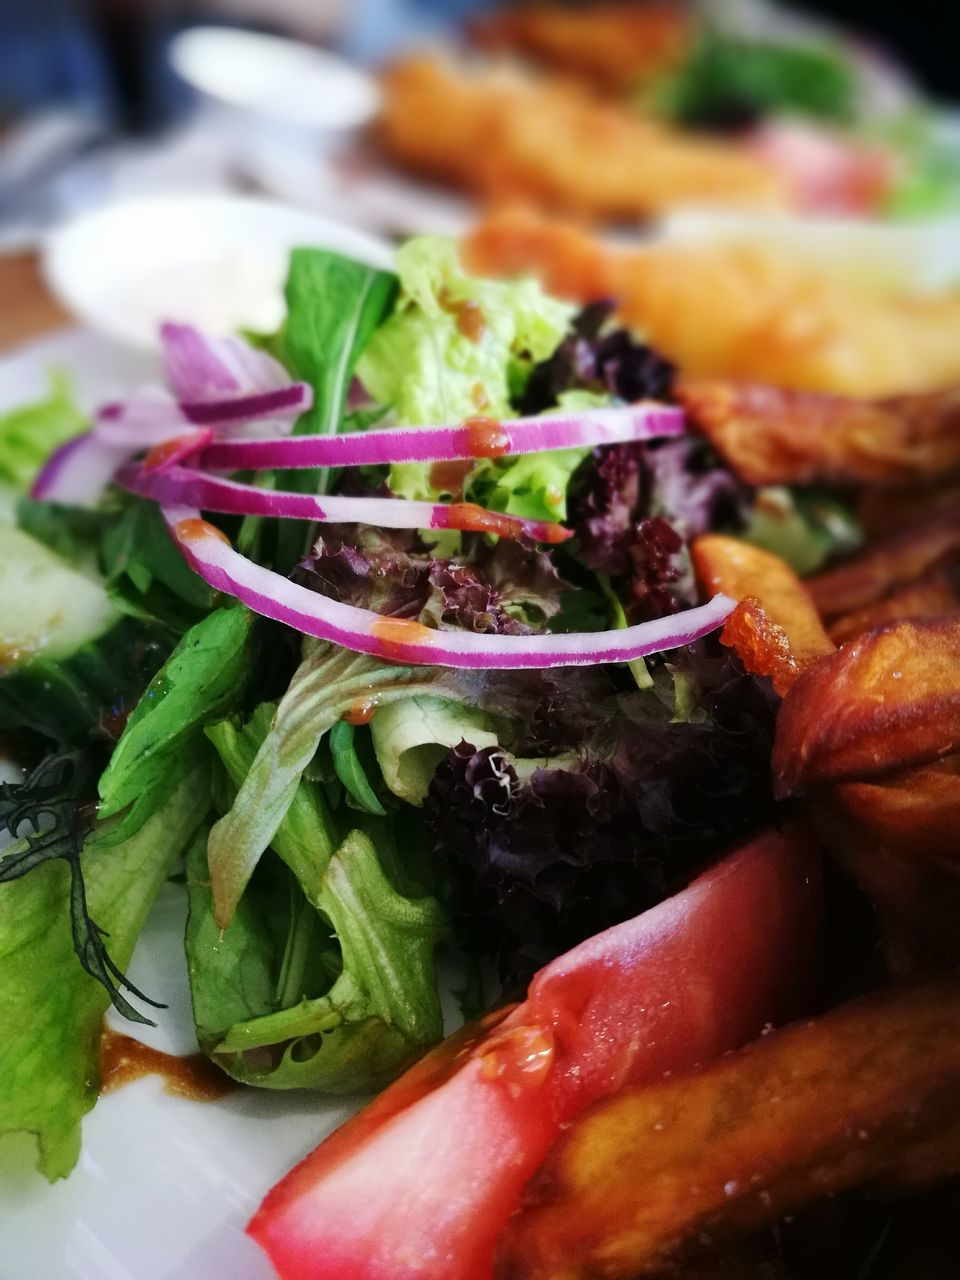 food, vegetable, food and drink, freshness, healthy eating, ready-to-eat, close-up, meat, indoors, wellbeing, salad, serving size, plate, meal, no people, still life, onion, lettuce, indulgence, fruit, garnish, temptation, dinner, vegetarian food, common beet